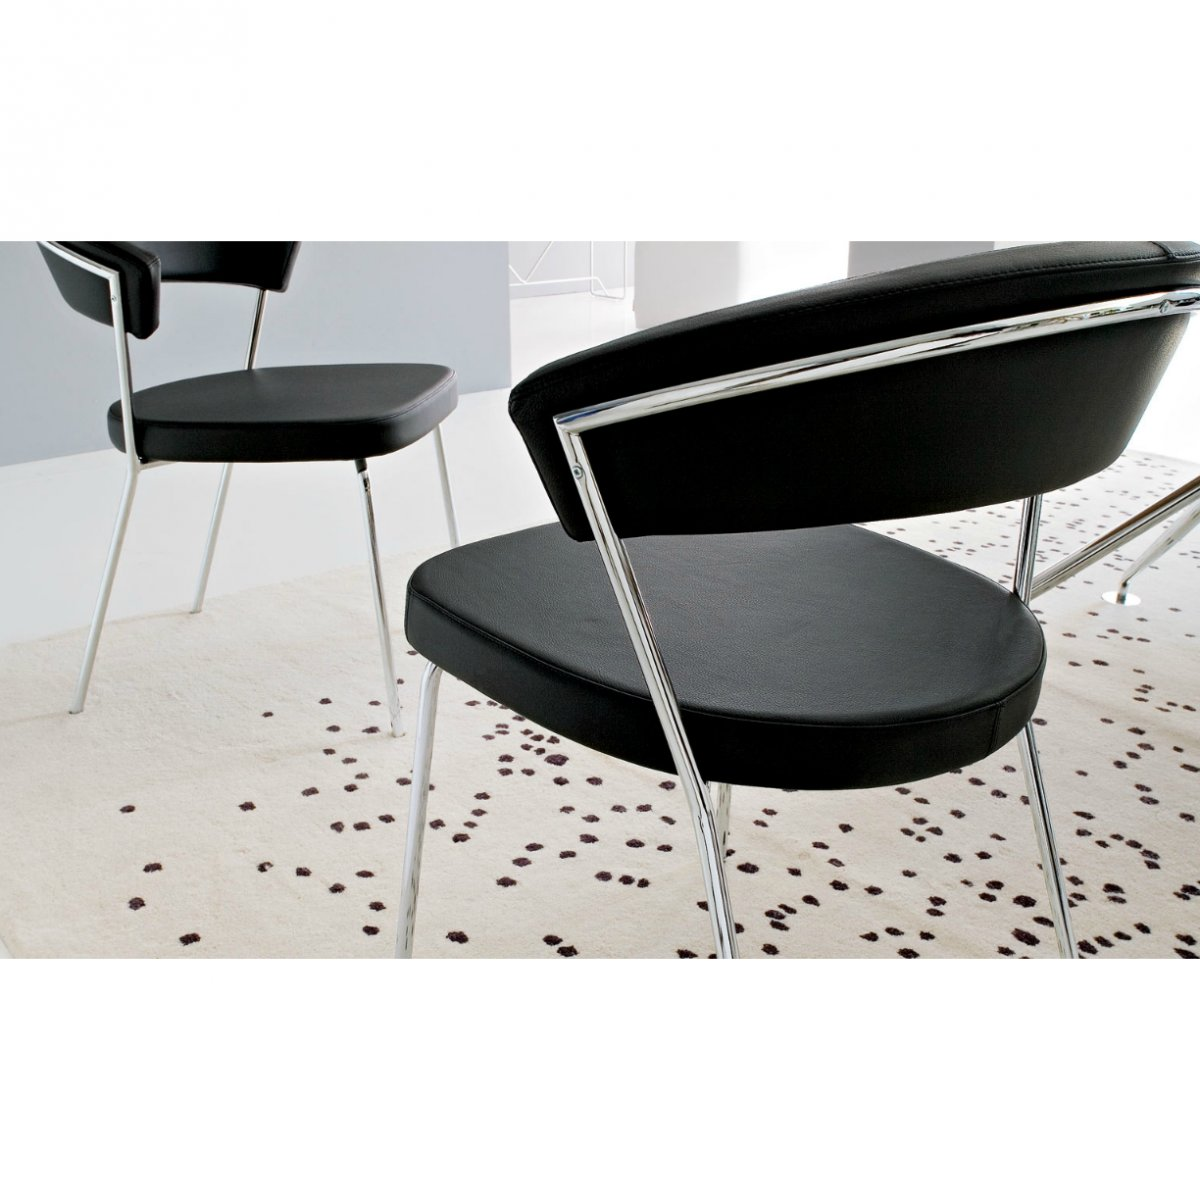 Sedia Calligaris New York Tortora Connubia By Calligaris Sedia New York Pelle Cb1084lh